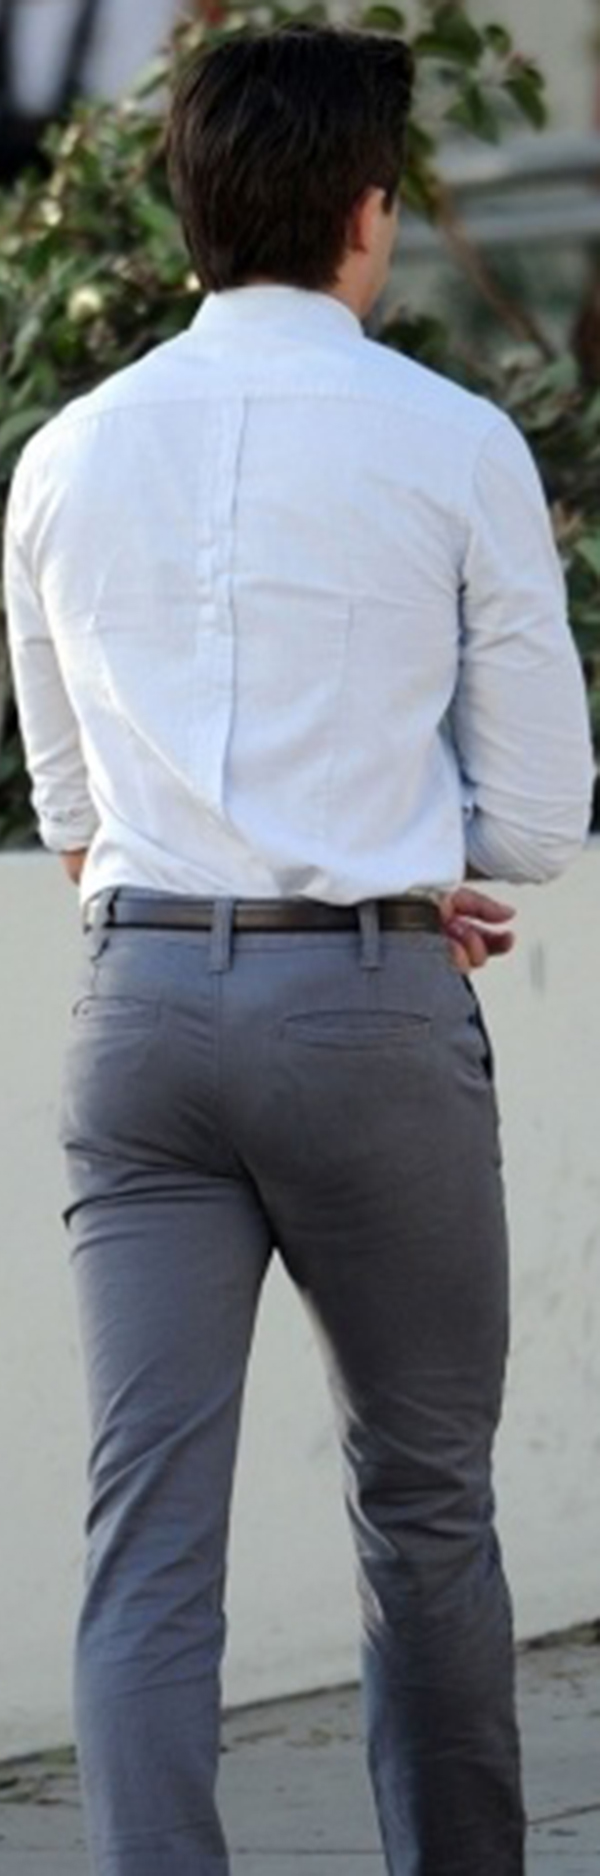 Zac Efron- still don't understand how people don't think he's attractive... I mean, Dat Bum!